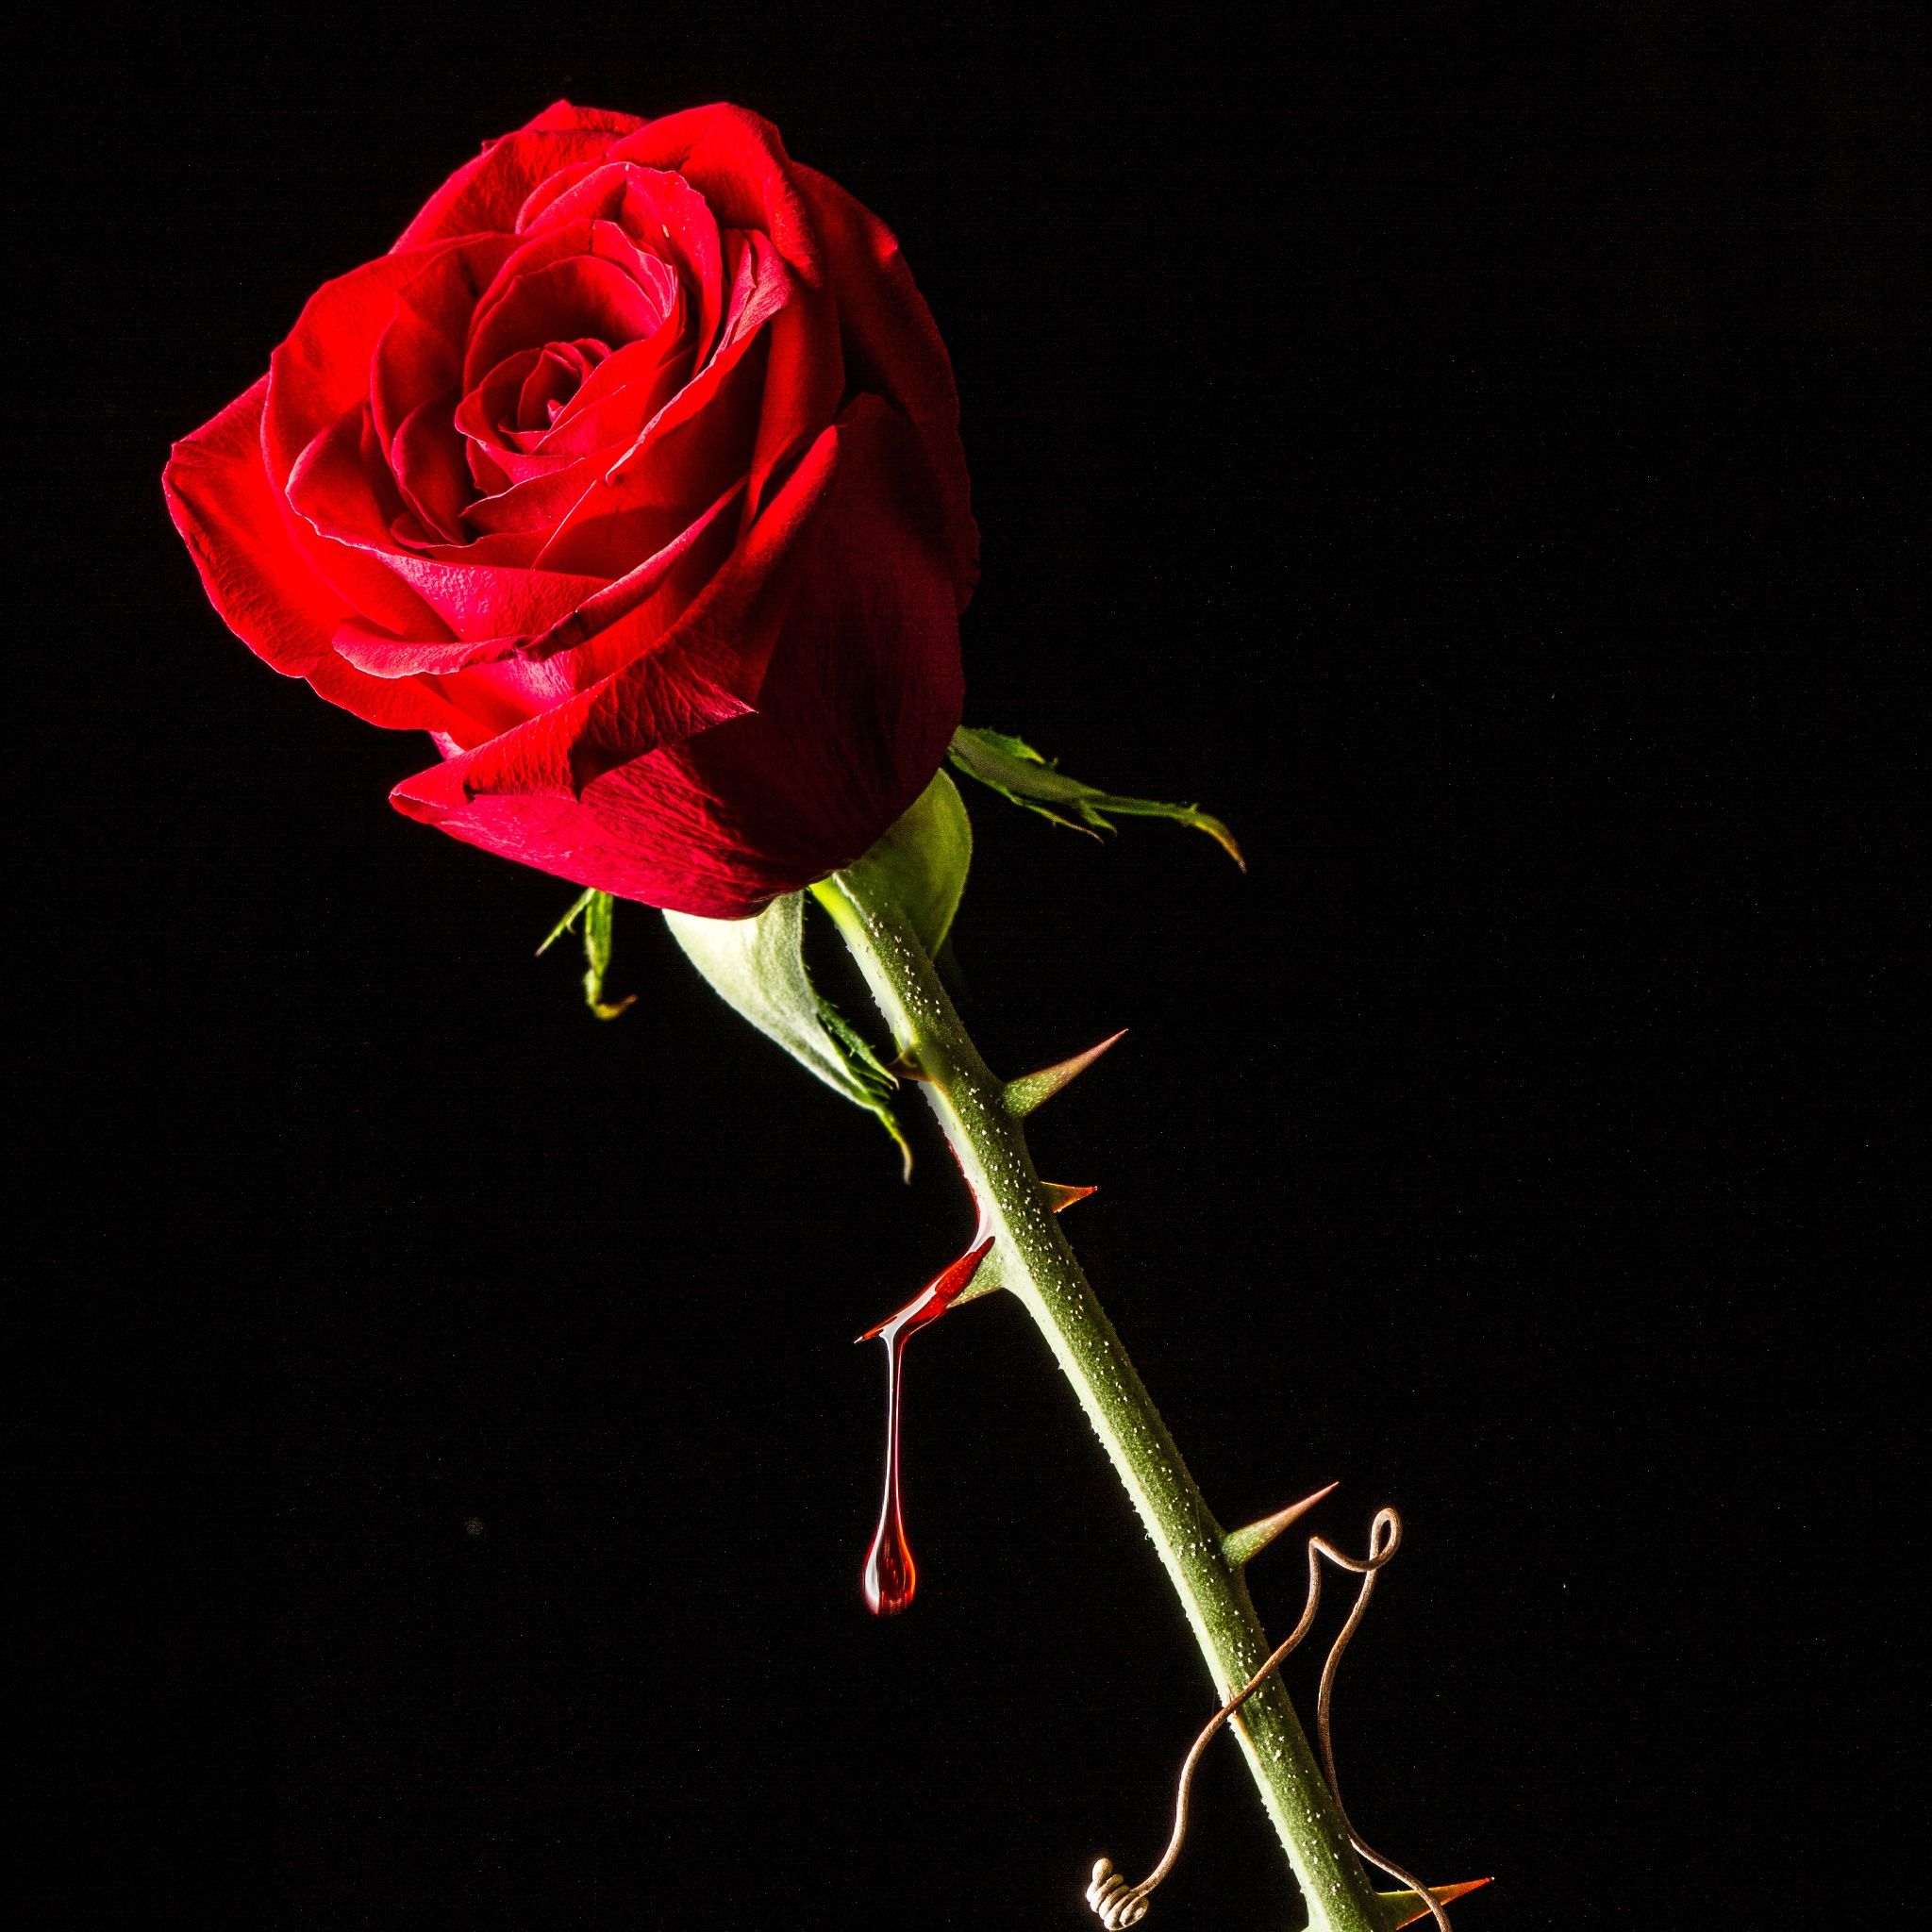 roses and thorns essay Every rose has a thorn essay 954 words 4 pages sometimes we all can feel  trapped in the day to day monotony of life in something as simple as an hour.